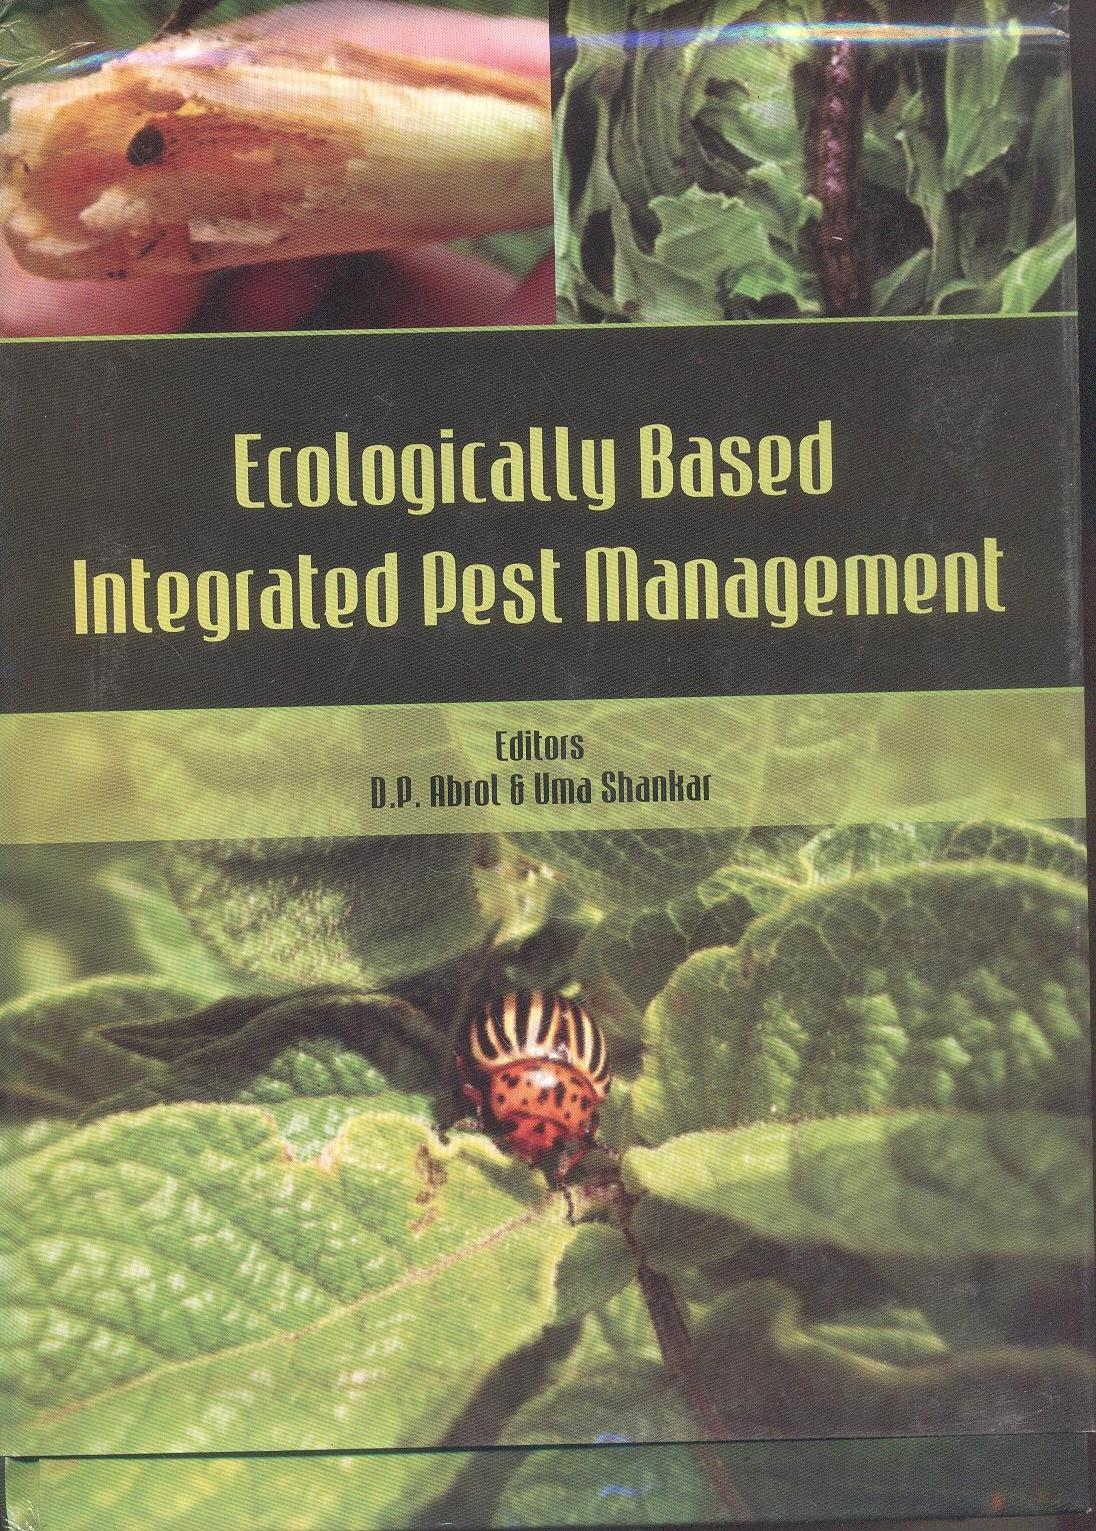 Cover of Ecological based integrated pest management (Part 2)